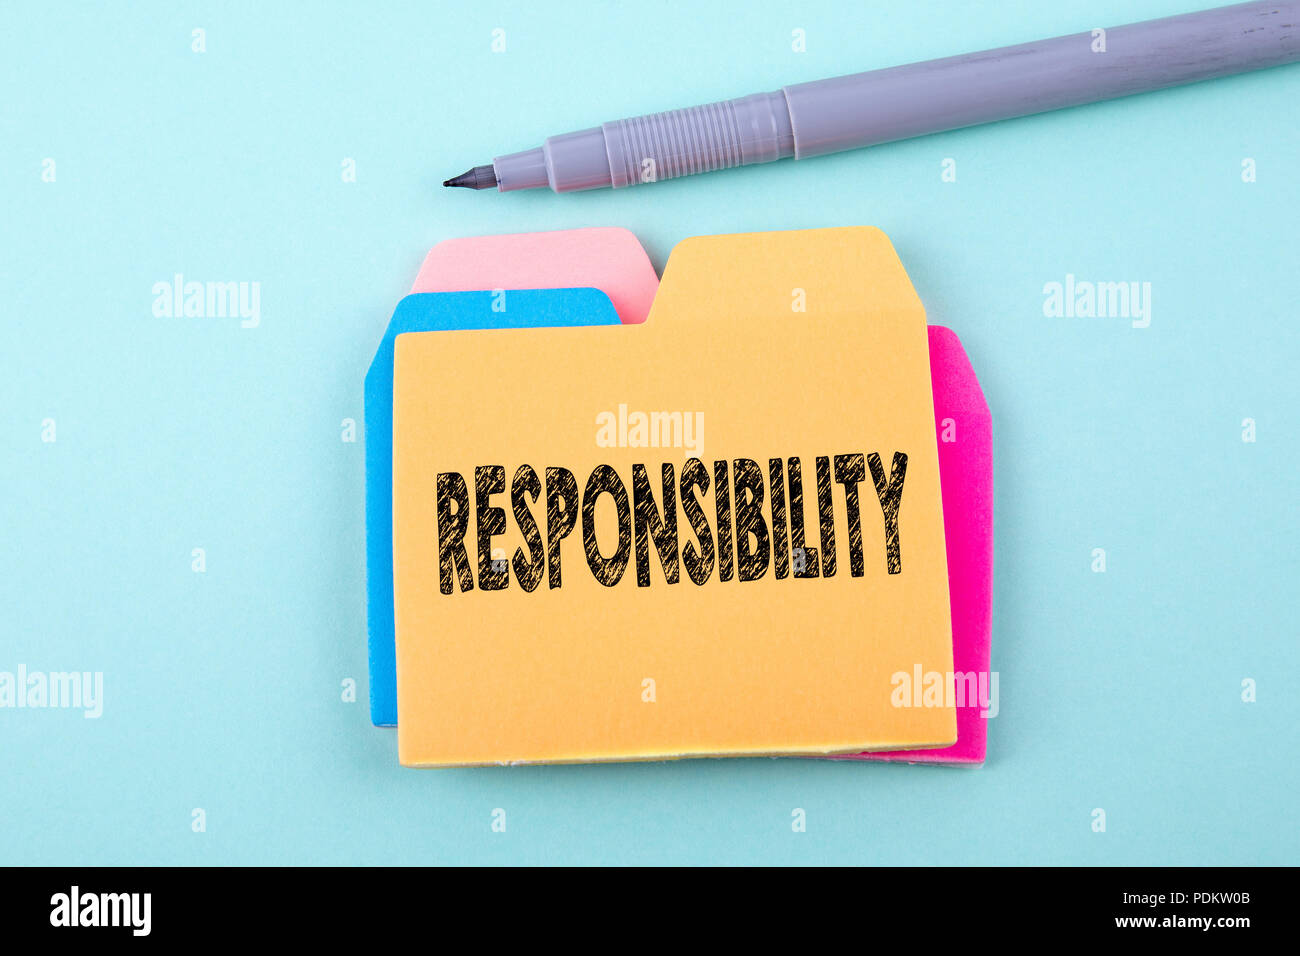 Responsibility, Business Concept - Stock Image